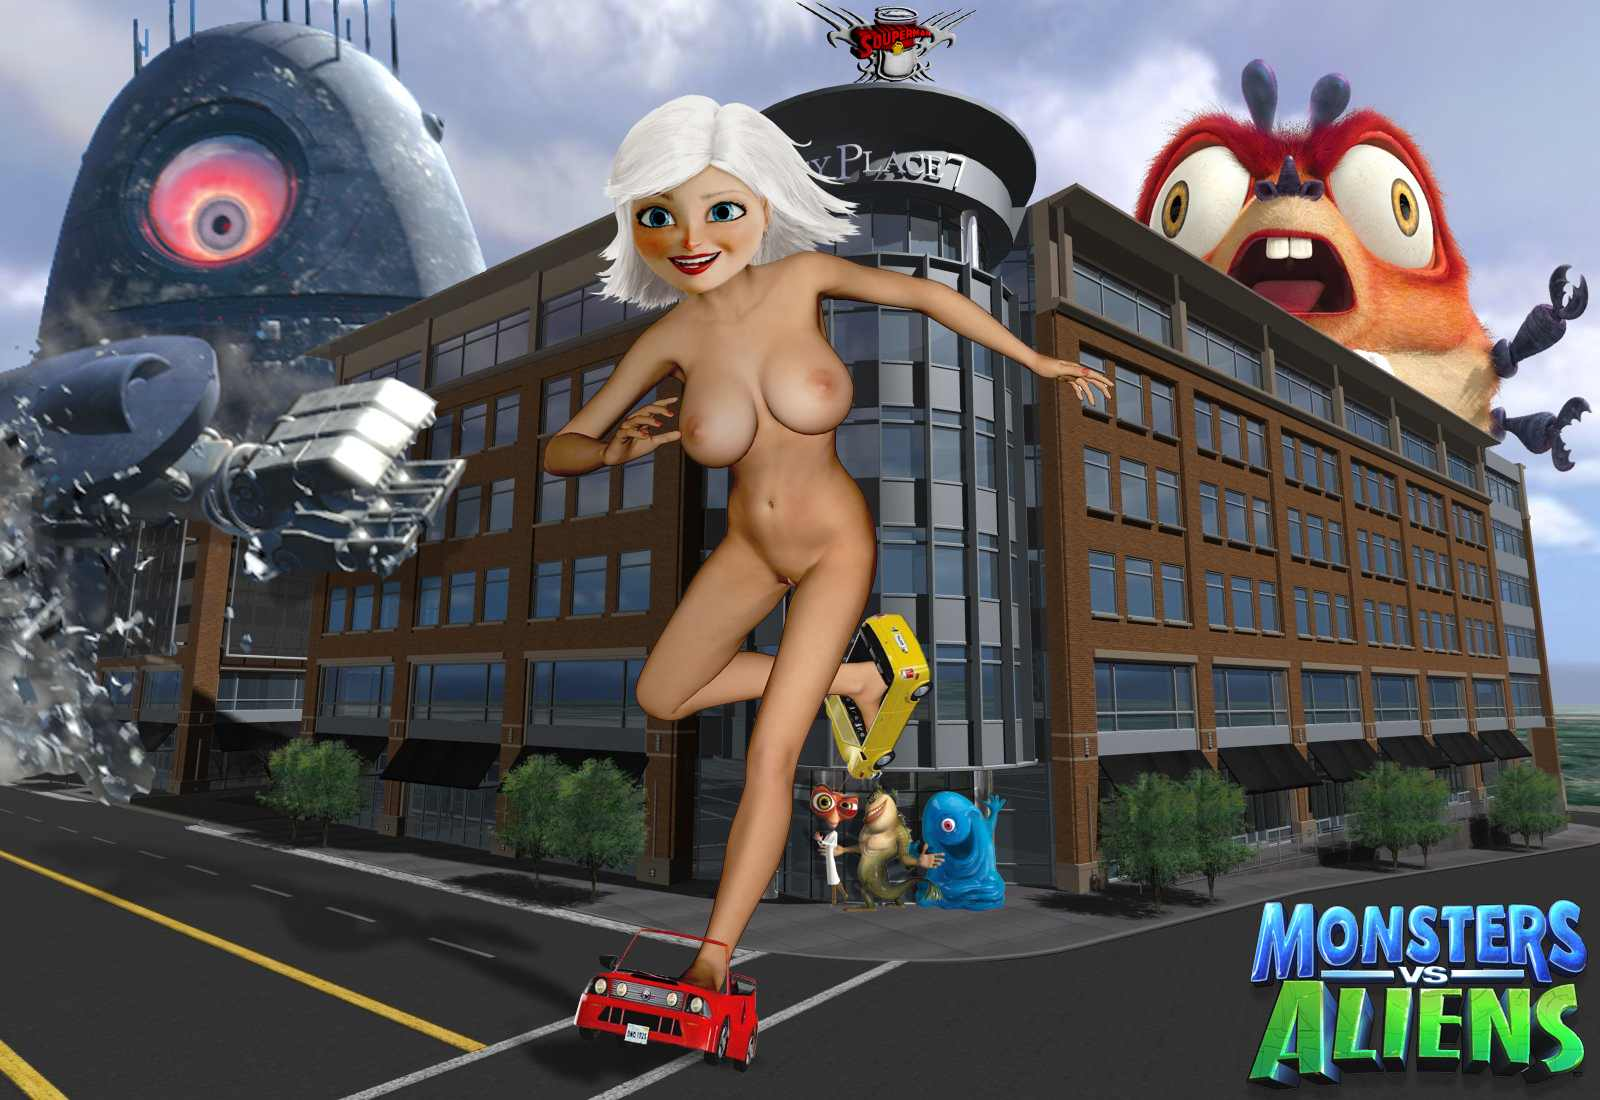 Monsters vs aliens film porn pics xxx movies